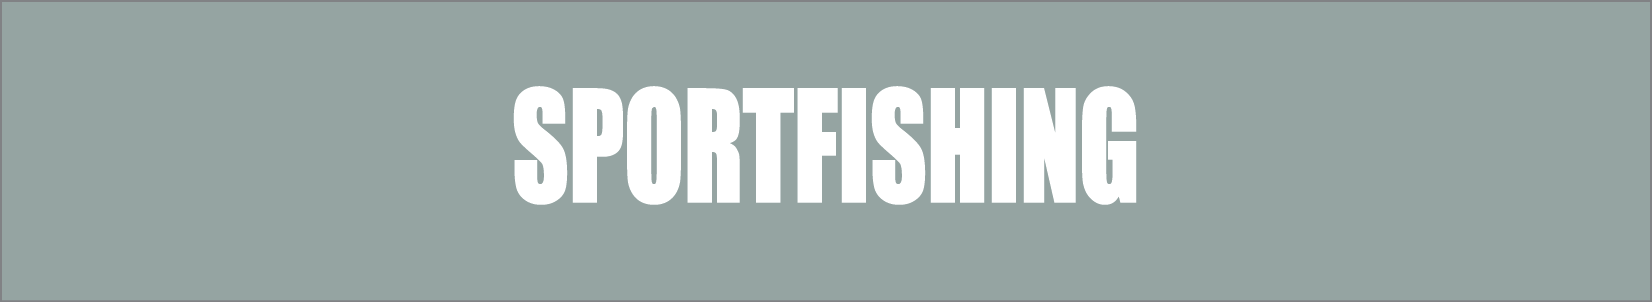 PM - Banners - Sportfishing - 1